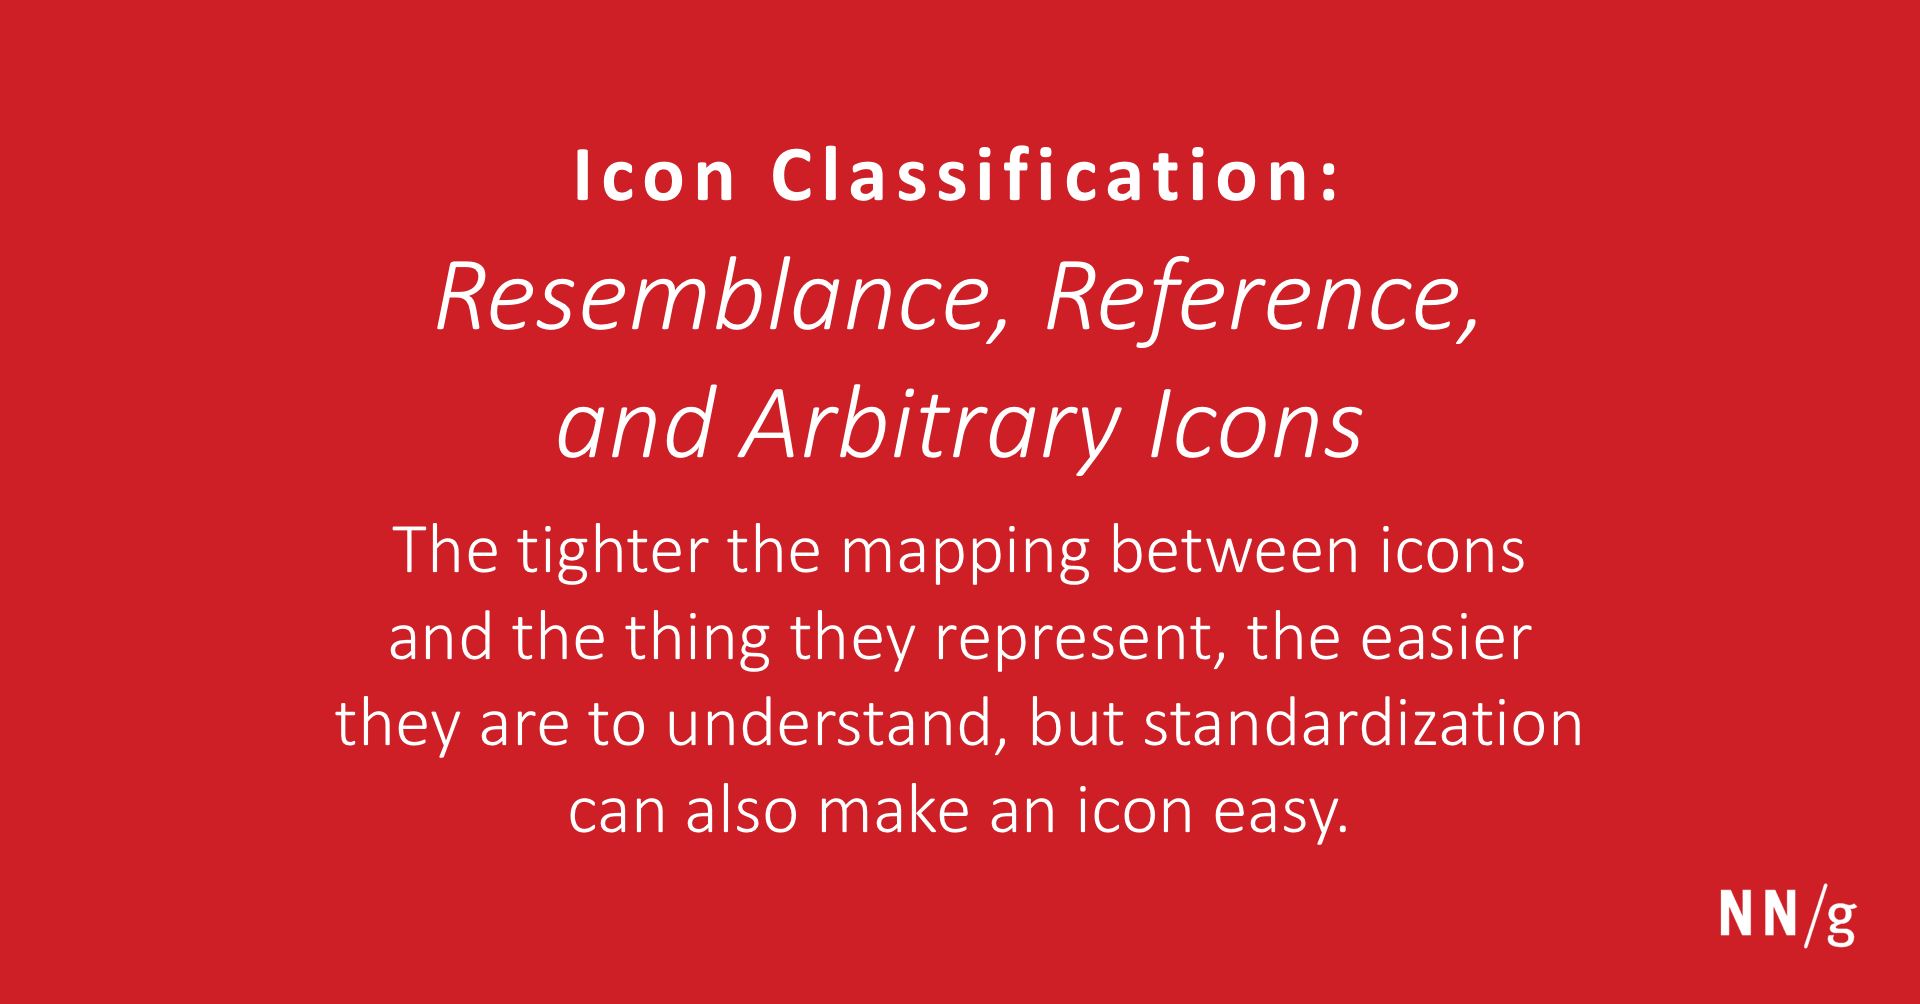 Icon classification resemblance reference and arbitrary icons buycottarizona Images